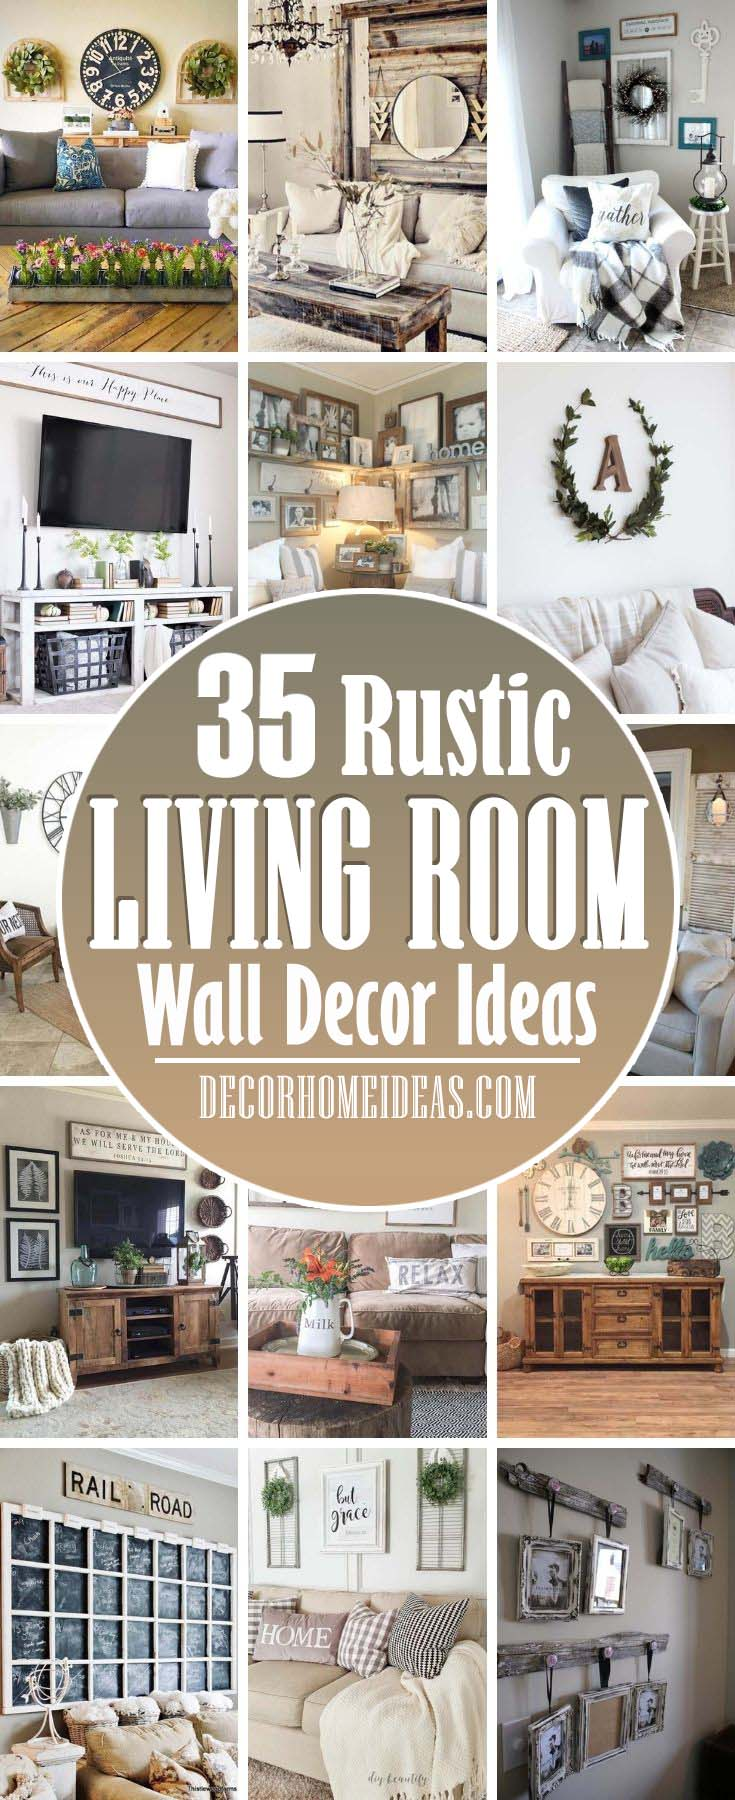 Best Rustic Living Room Wall Decor Ideas. No matter which style of rustic decor you choose for your home, you'll be completely on-trend. Right now, the rustic decorating style is all the rage and isn't going out of style any time soon. #decorhomeideas